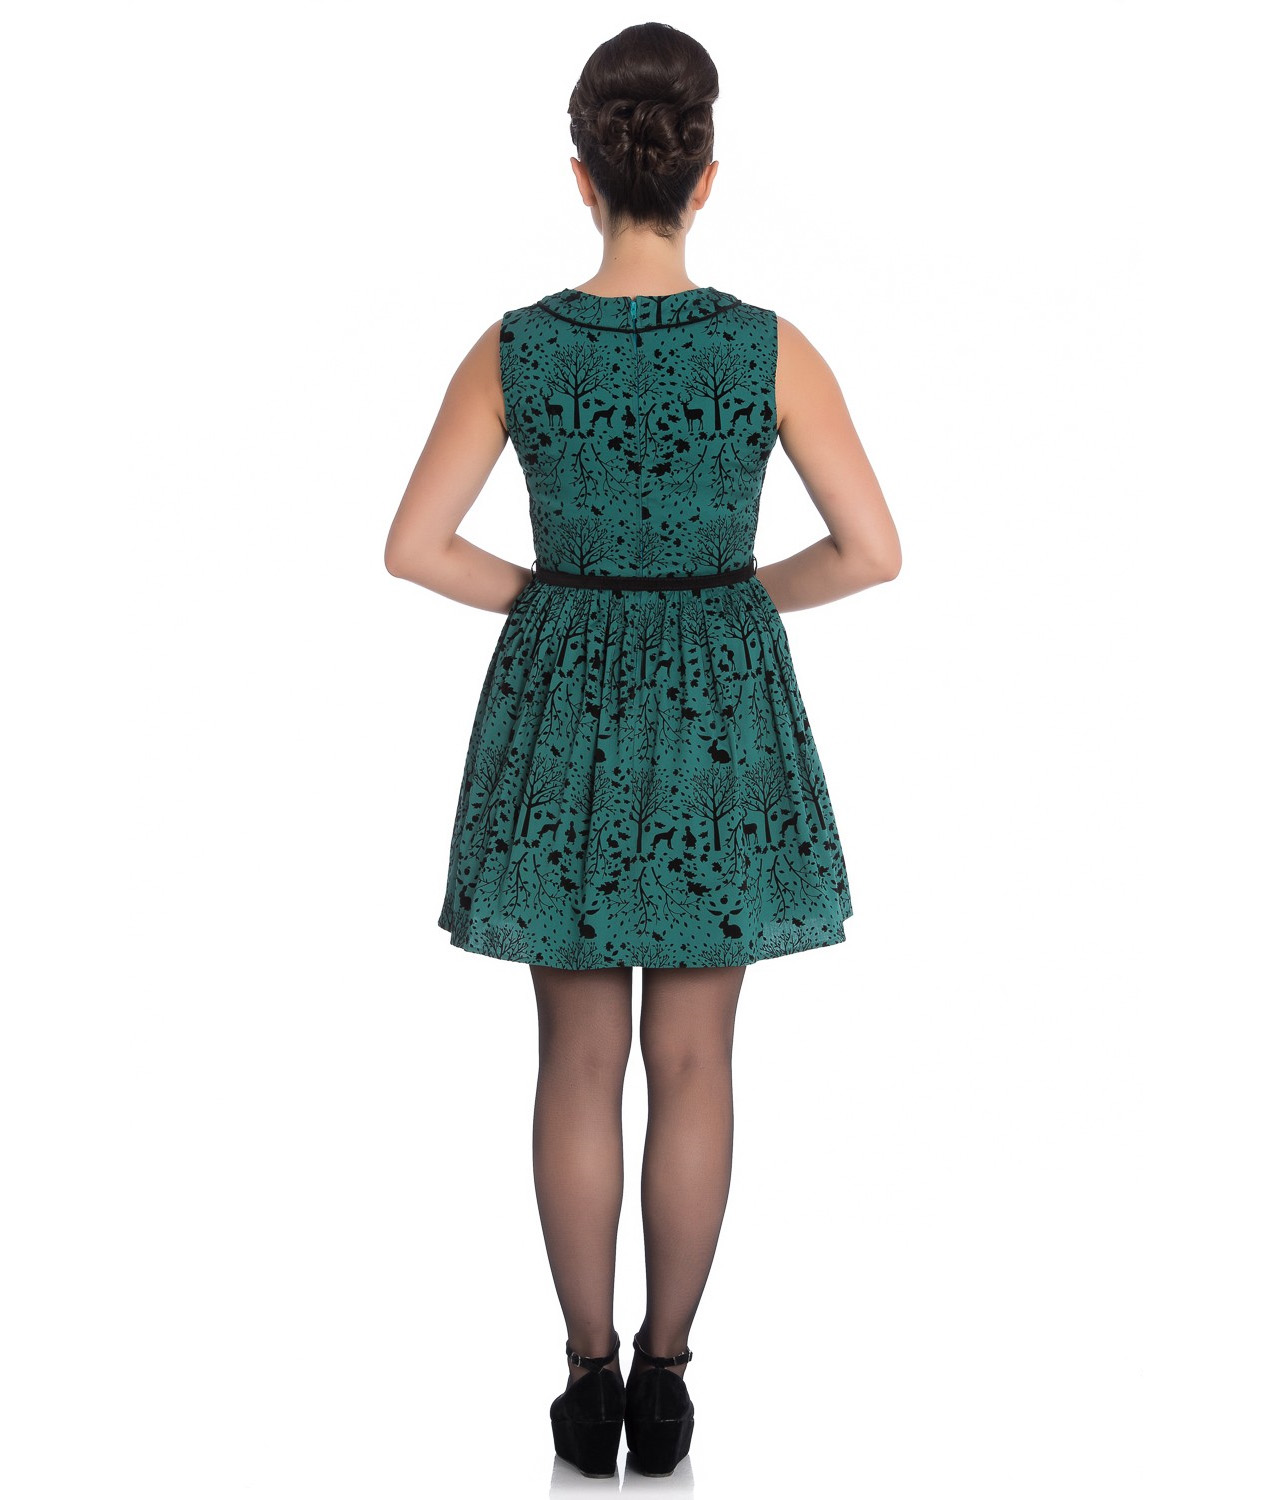 Hell-Bunny-50s-Mini-Skater-Dress-Woodland-Trees-SHERWOOD-Dark-Green-All-Sizes thumbnail 25